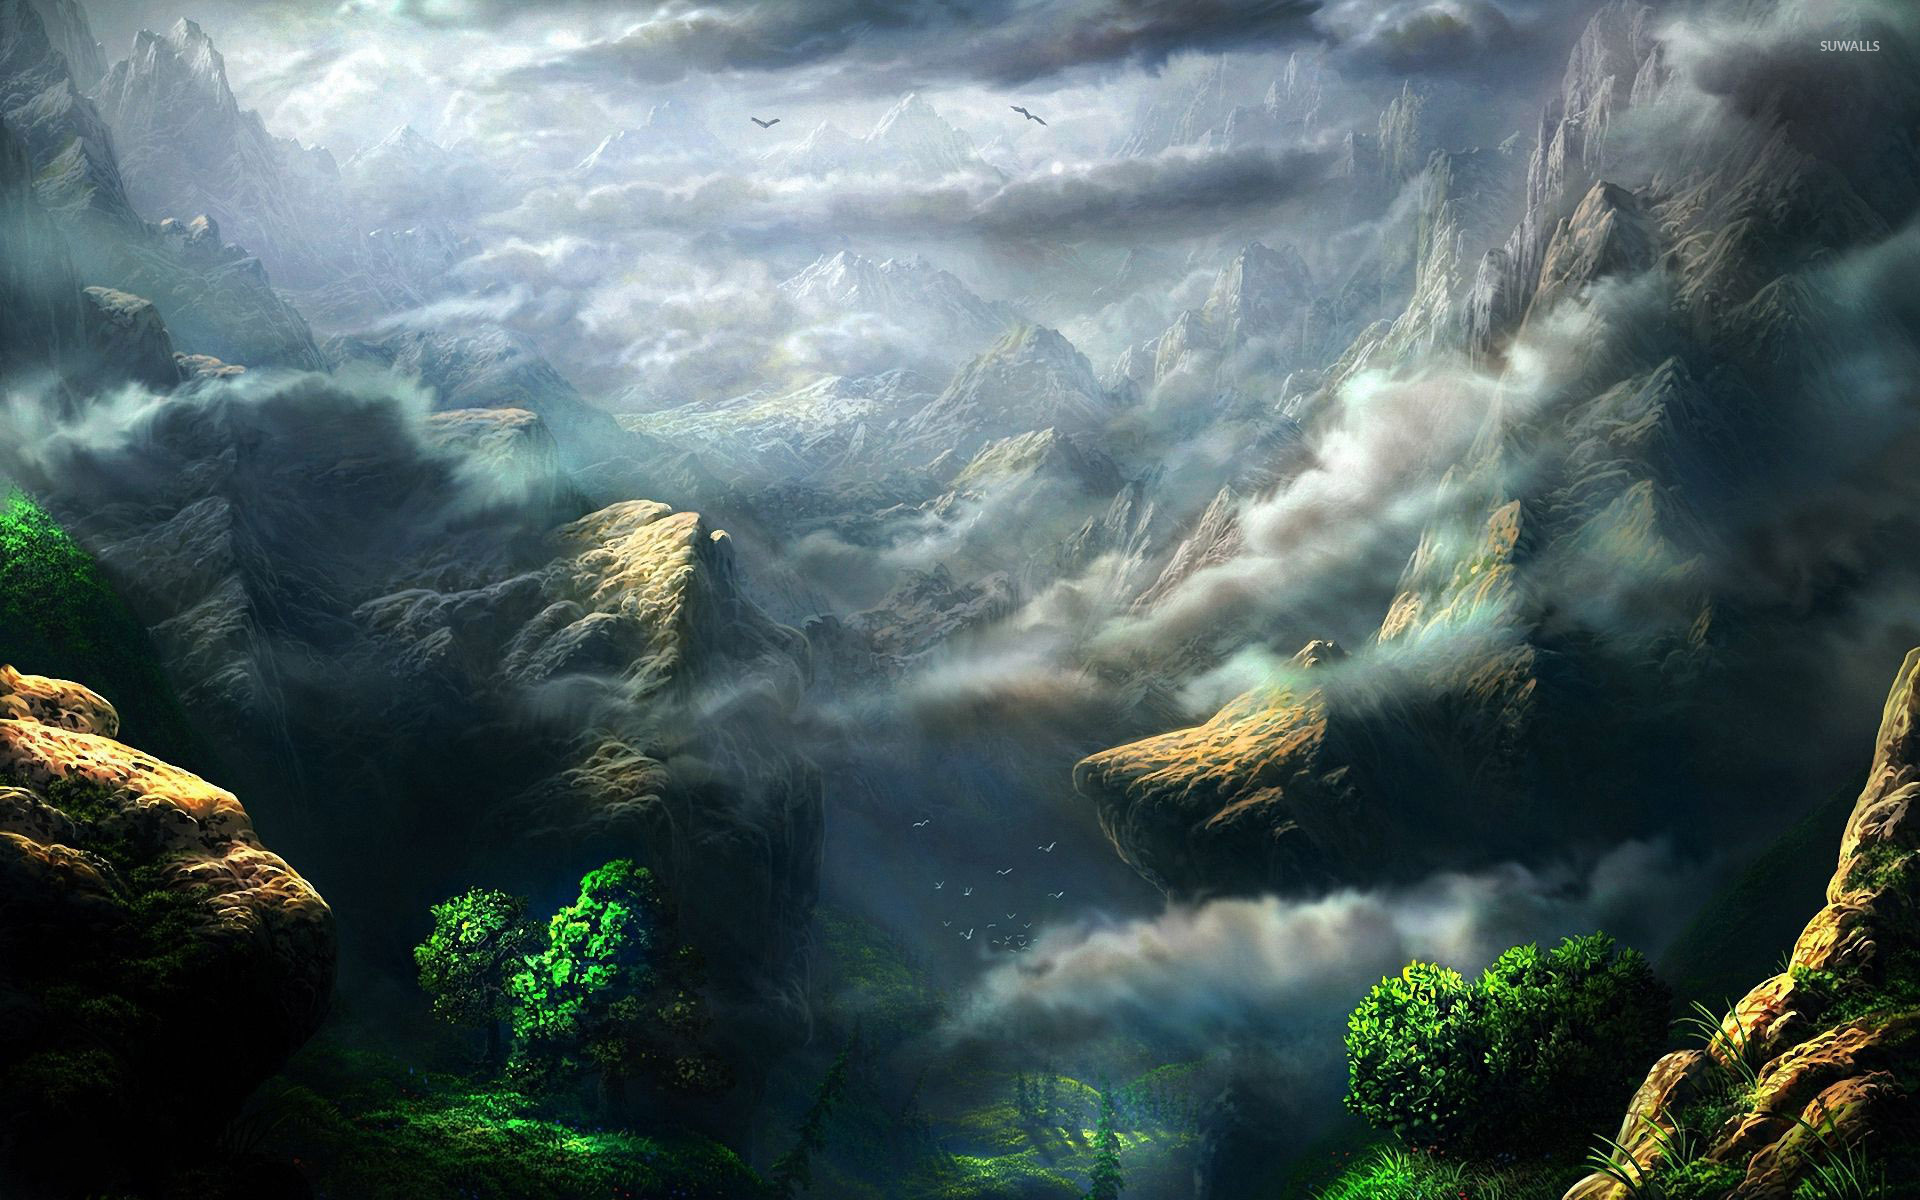 Great Wallpaper Mountain Art - fog-rising-from-the-foggy-mountains-46870-1920x1200  Graphic_74421.jpg